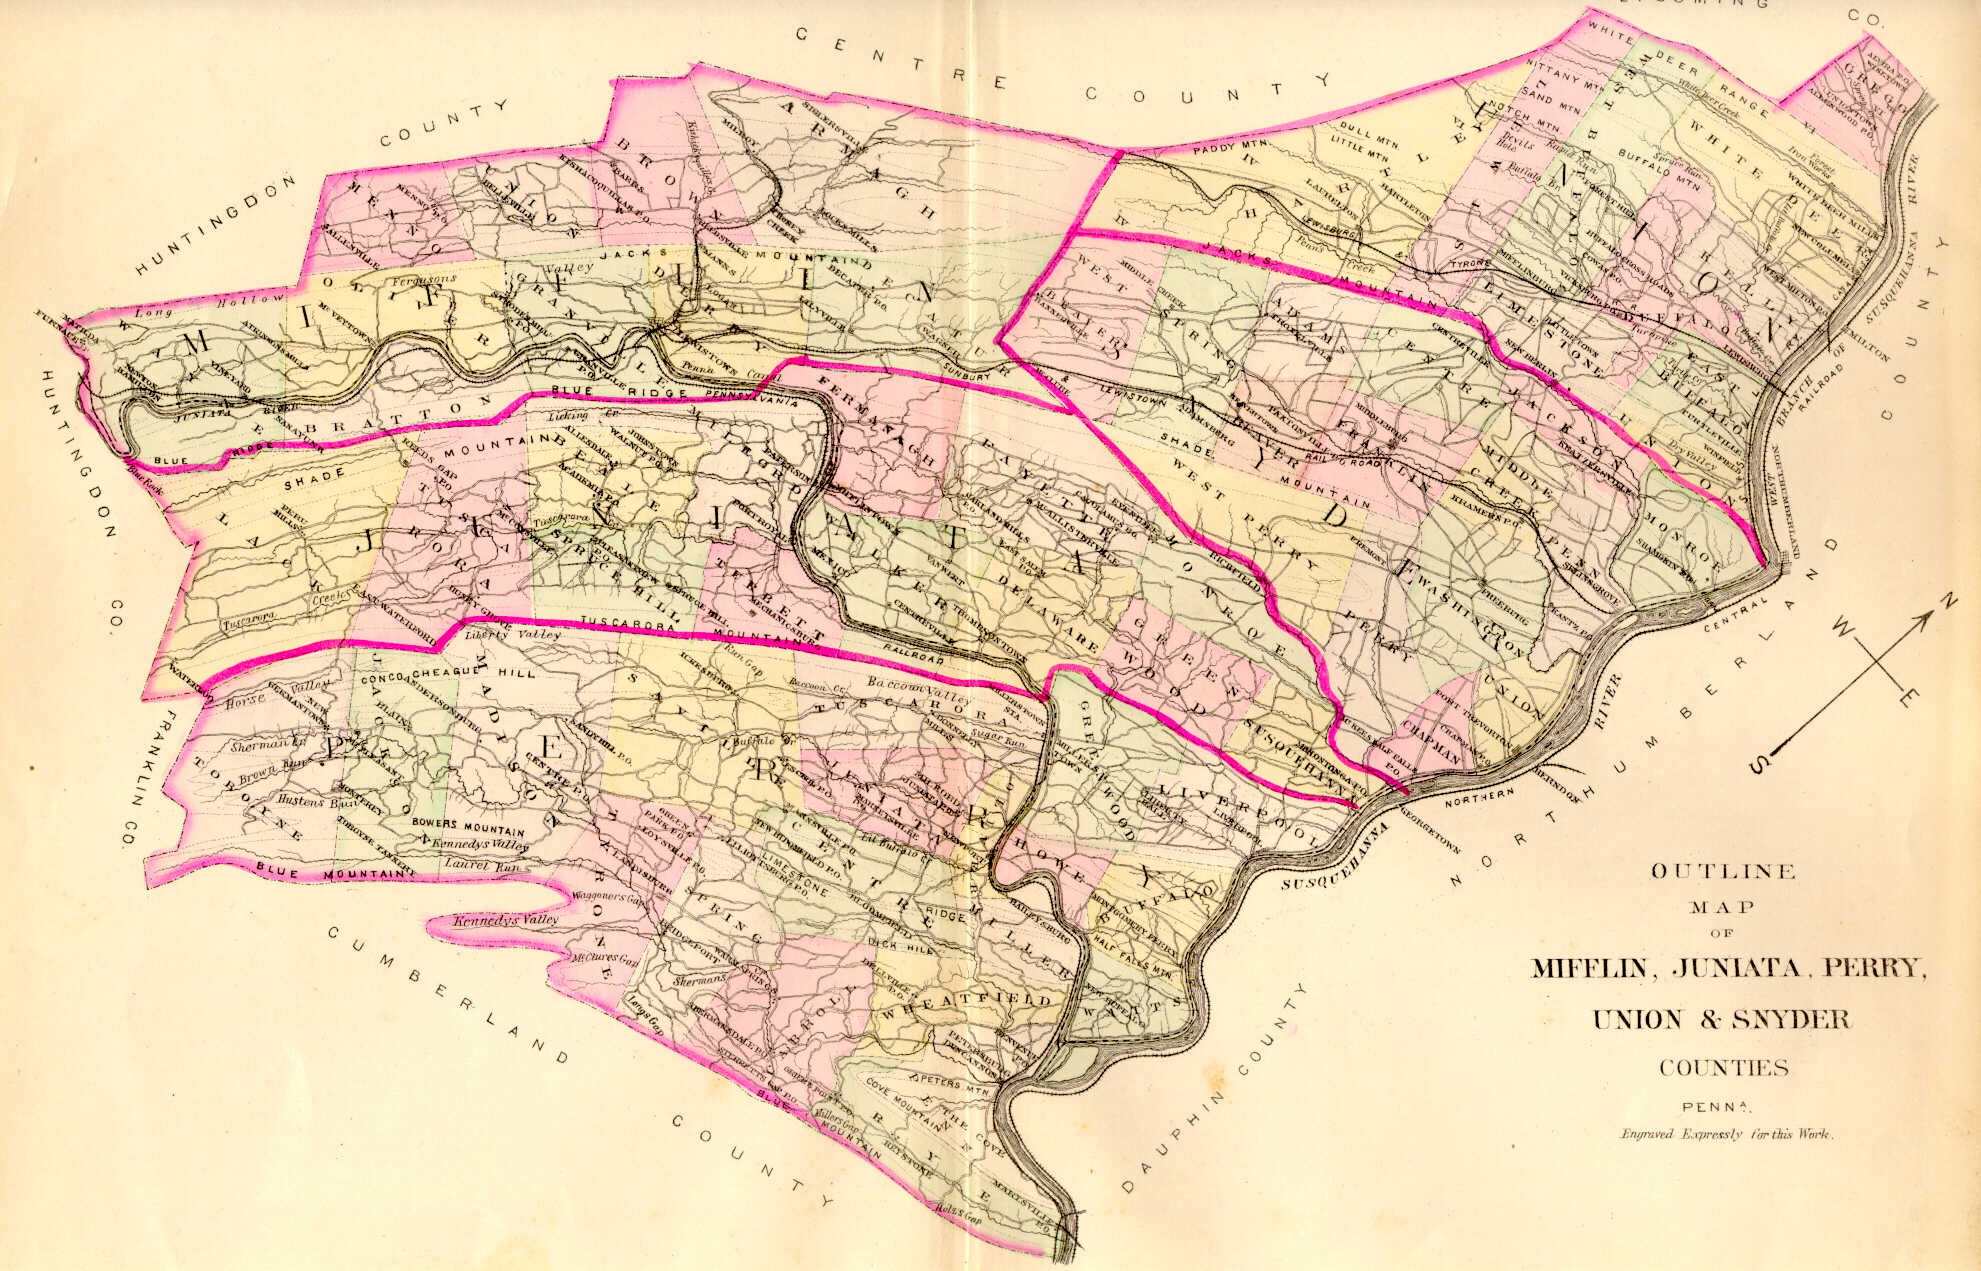 Union Co 1868 Atlas Warrantee Map Further Resources